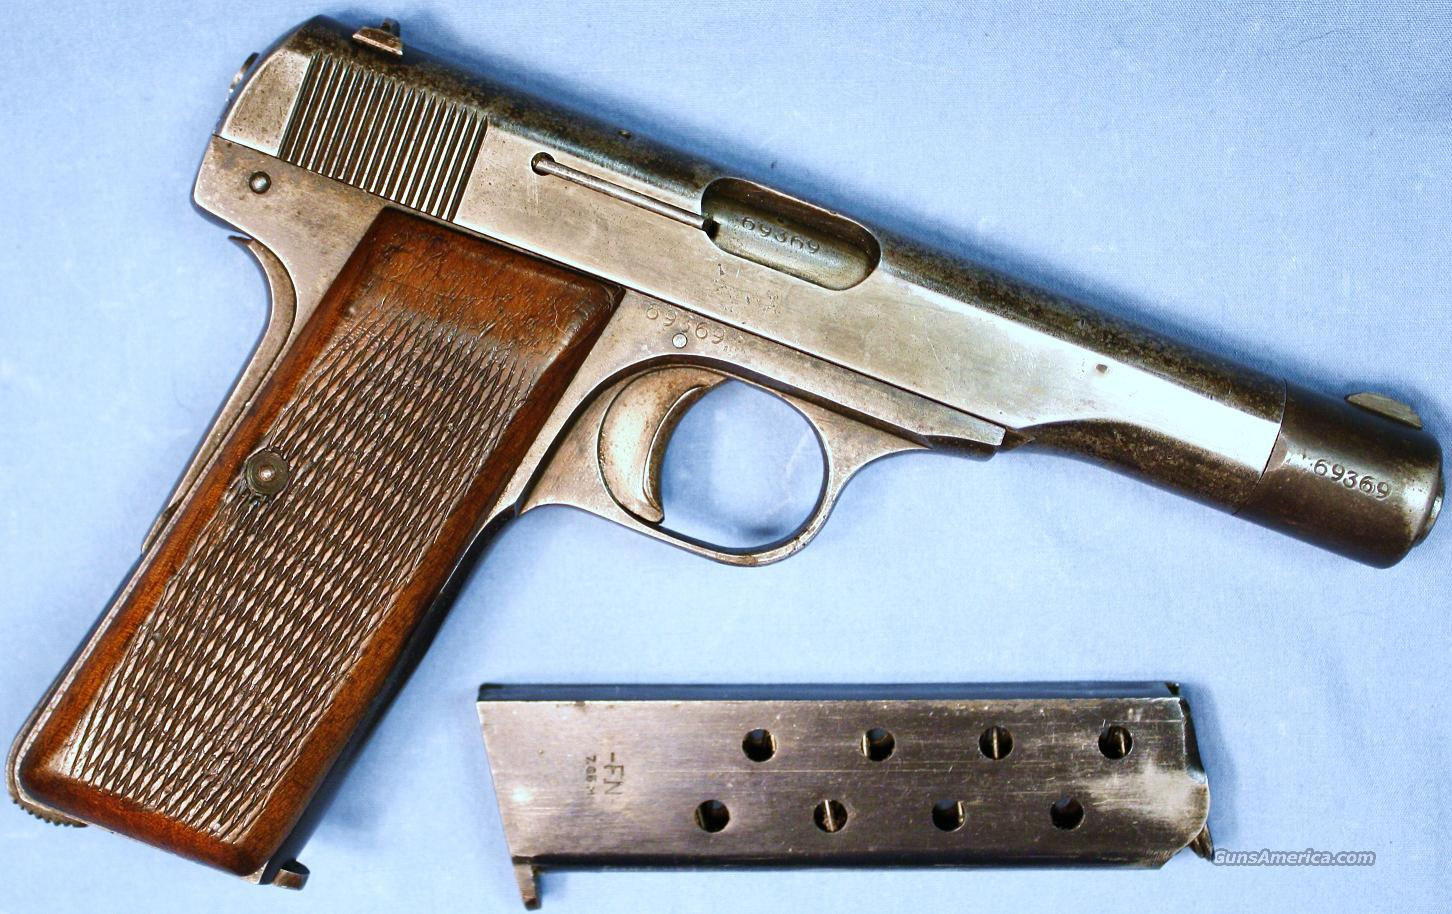 German Army Browning FN Model 1922 Semi-Automatic Pistol .32ACP  Guns > Pistols > Browning Pistols > Other Autos